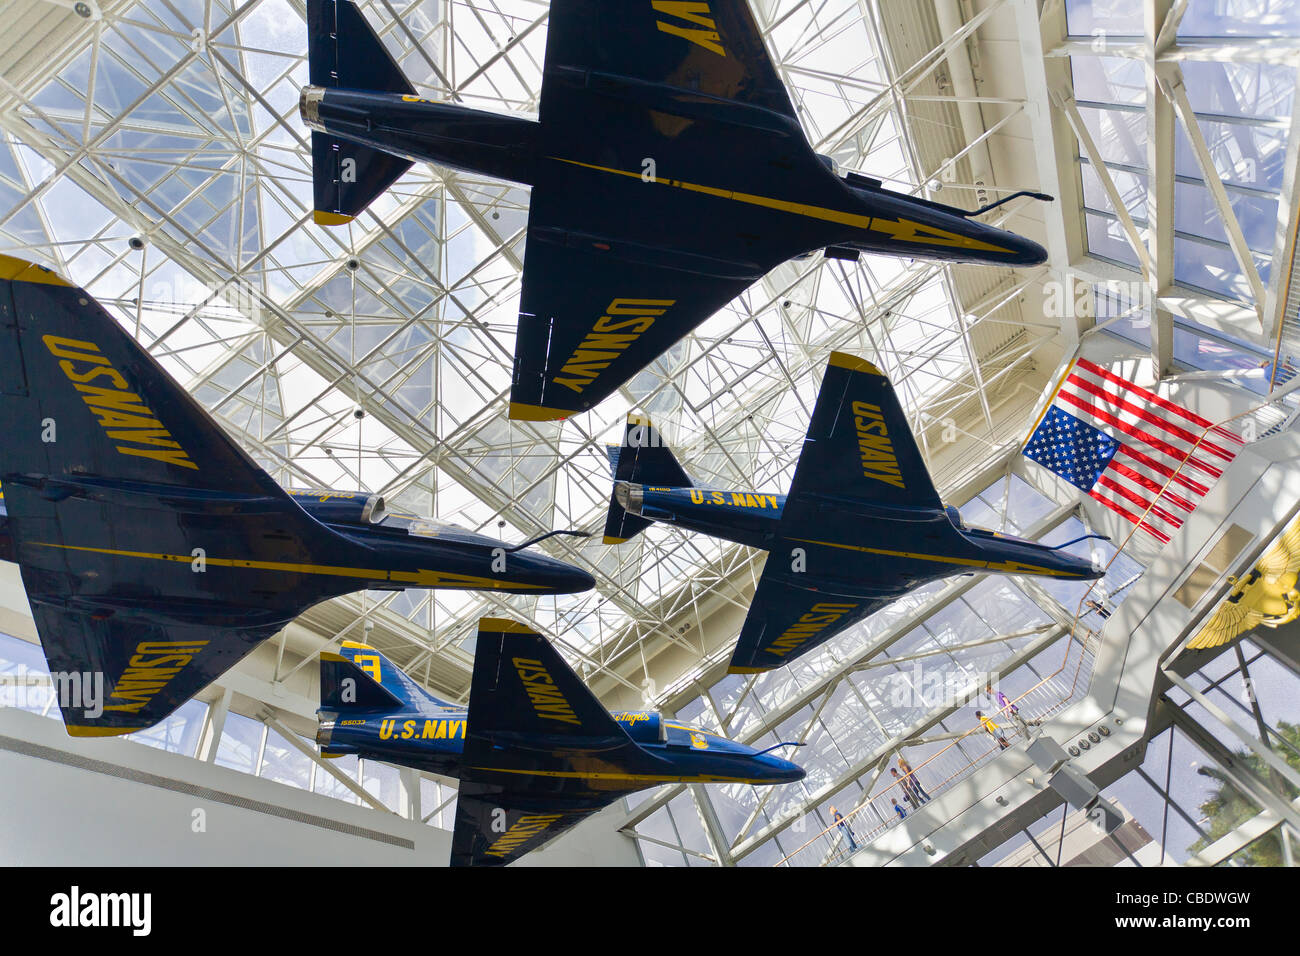 Blue Angel planes at the National Naval Aviation Museum in Pensacola Florida - Stock Image